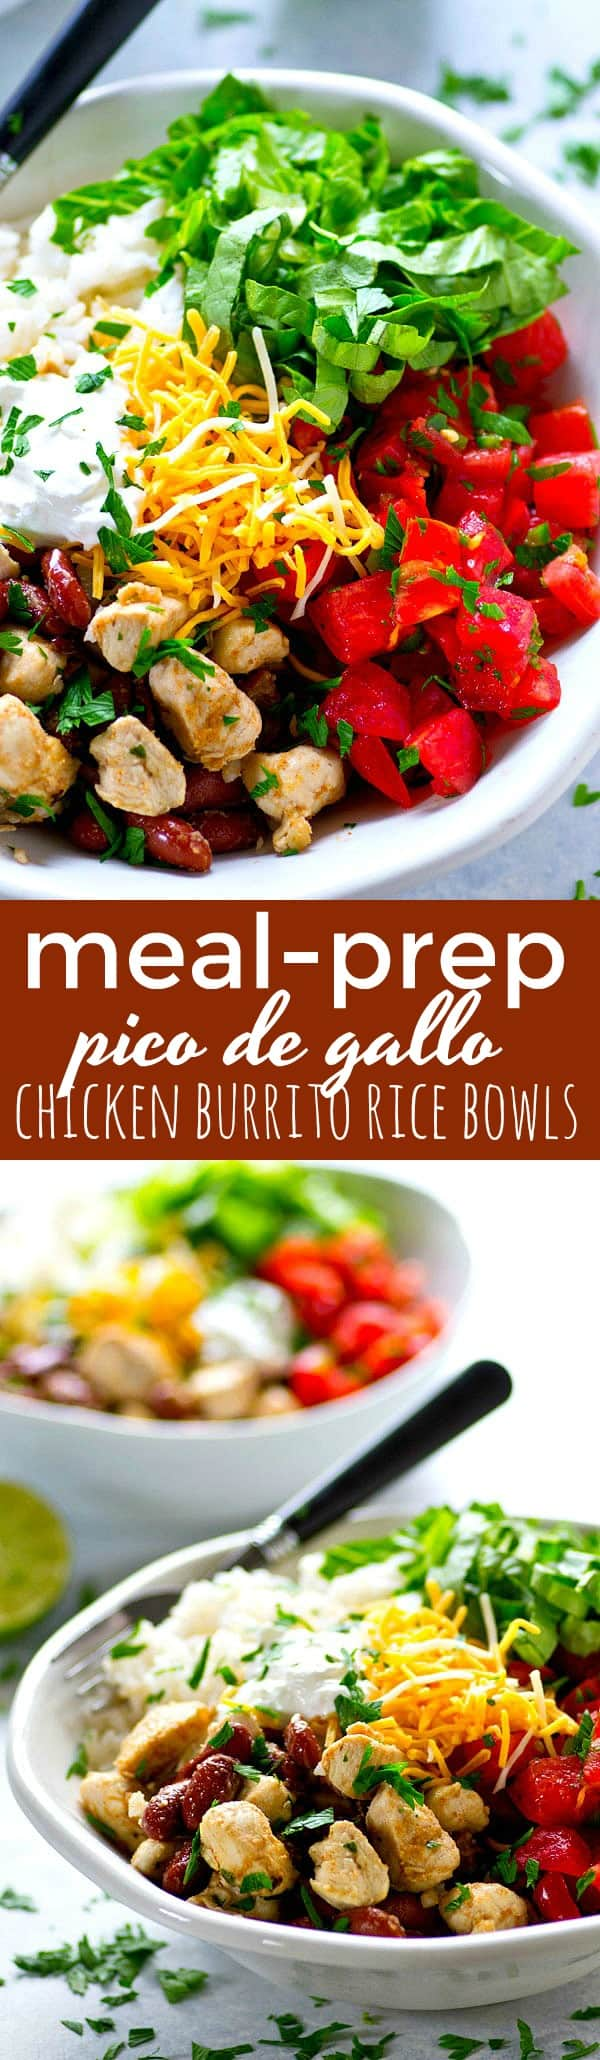 Spicy homemade pico de gallo and all the burrito bowl fixins' are piled into these chicken burrito rice bowls that can be meal prepped completely ahead of time!